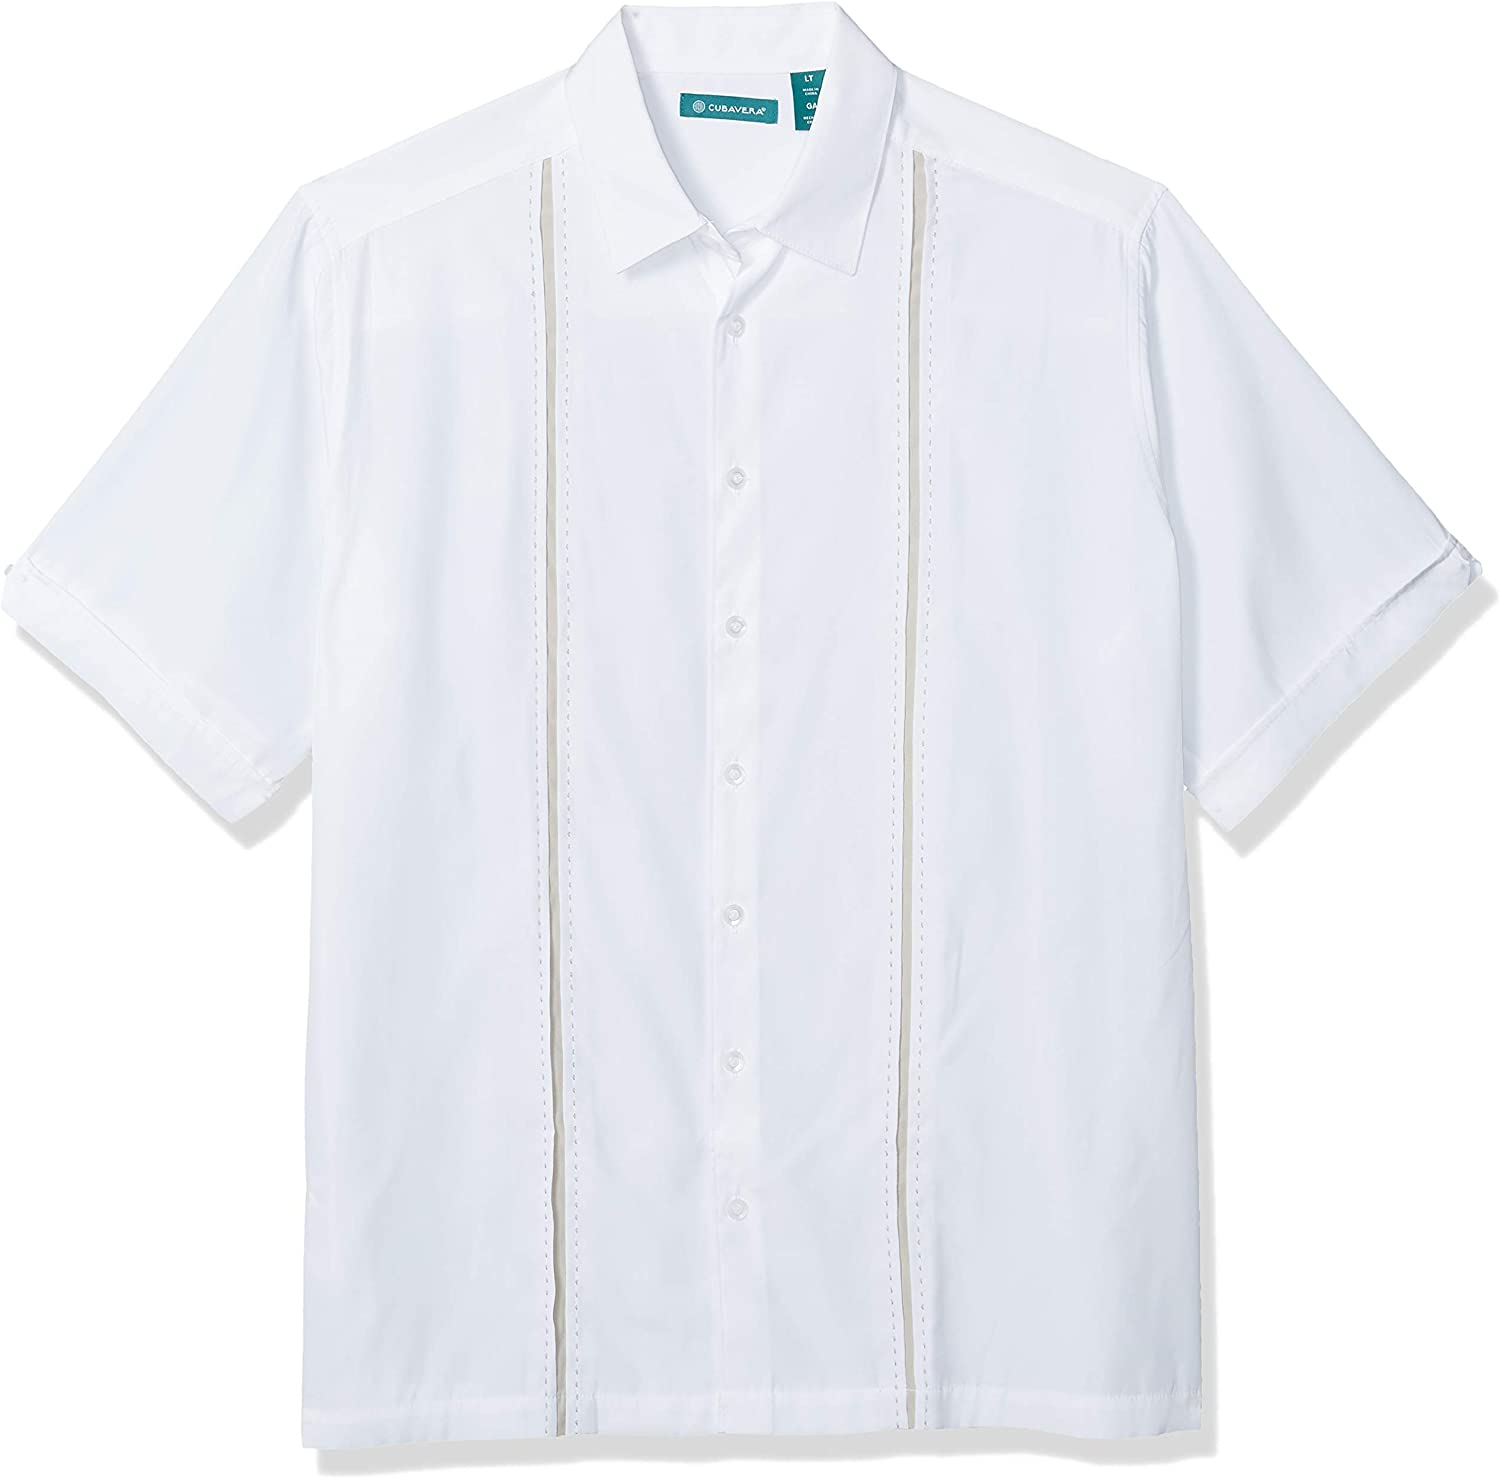 Cubavera Men's Short Sleeve Insert Panels with Pickstitch Shirt